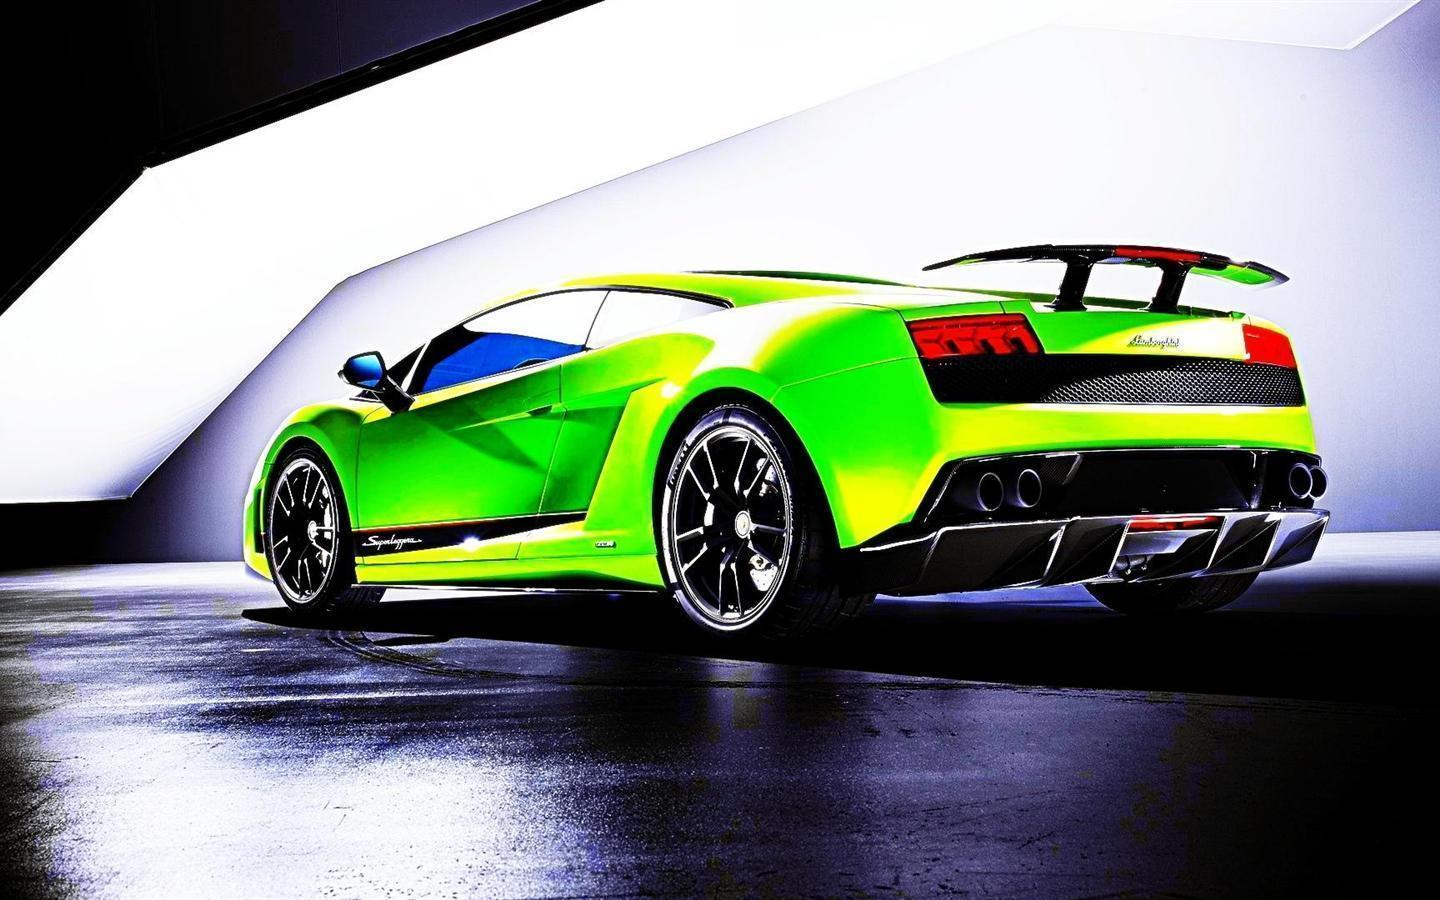 wallpapers of sports cars wallpaper cave